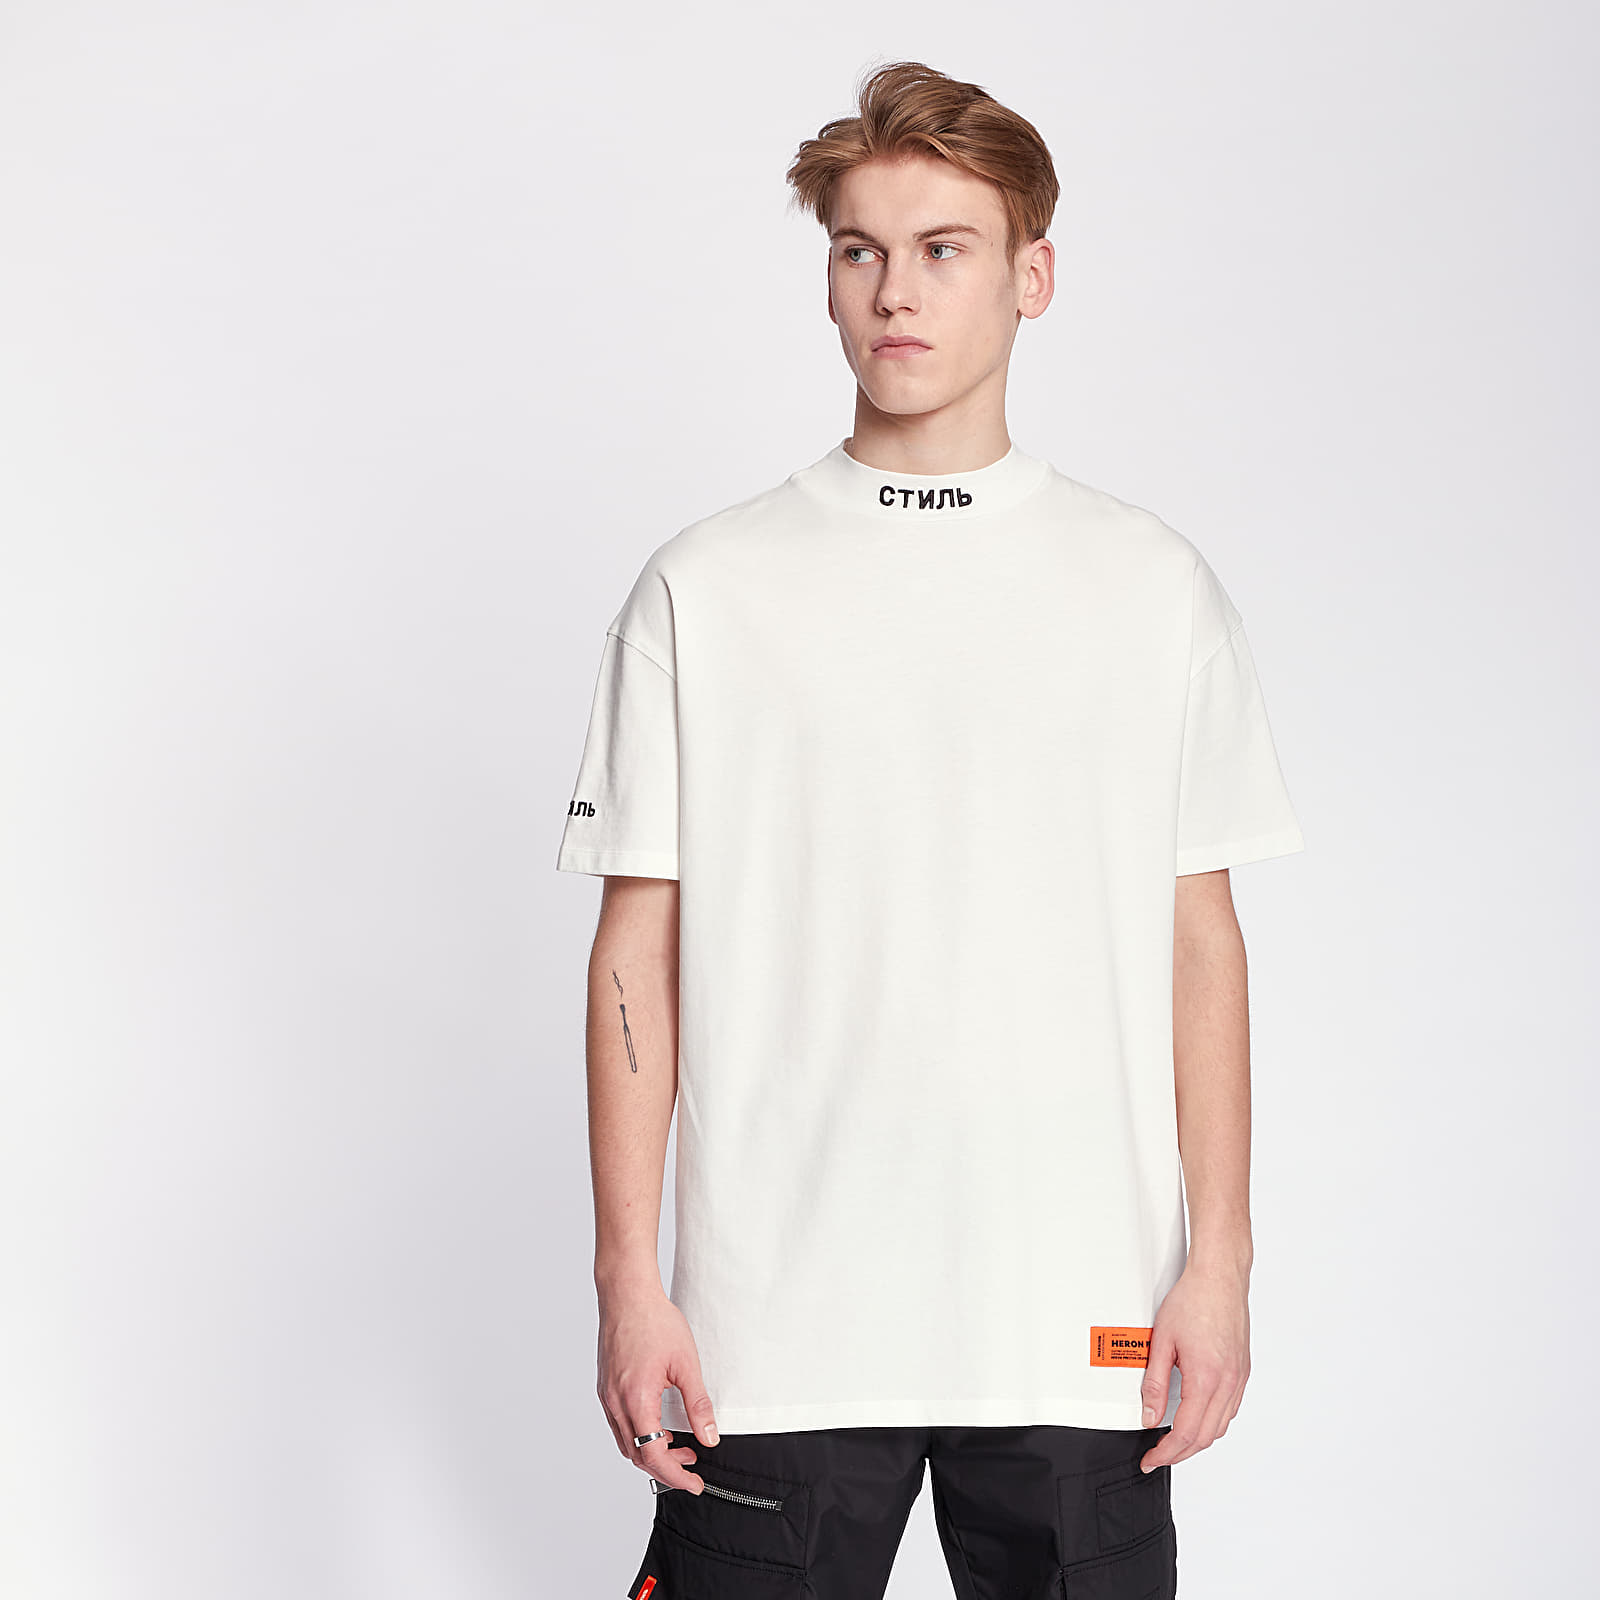 HERON PRESTON Turtleneck Tee